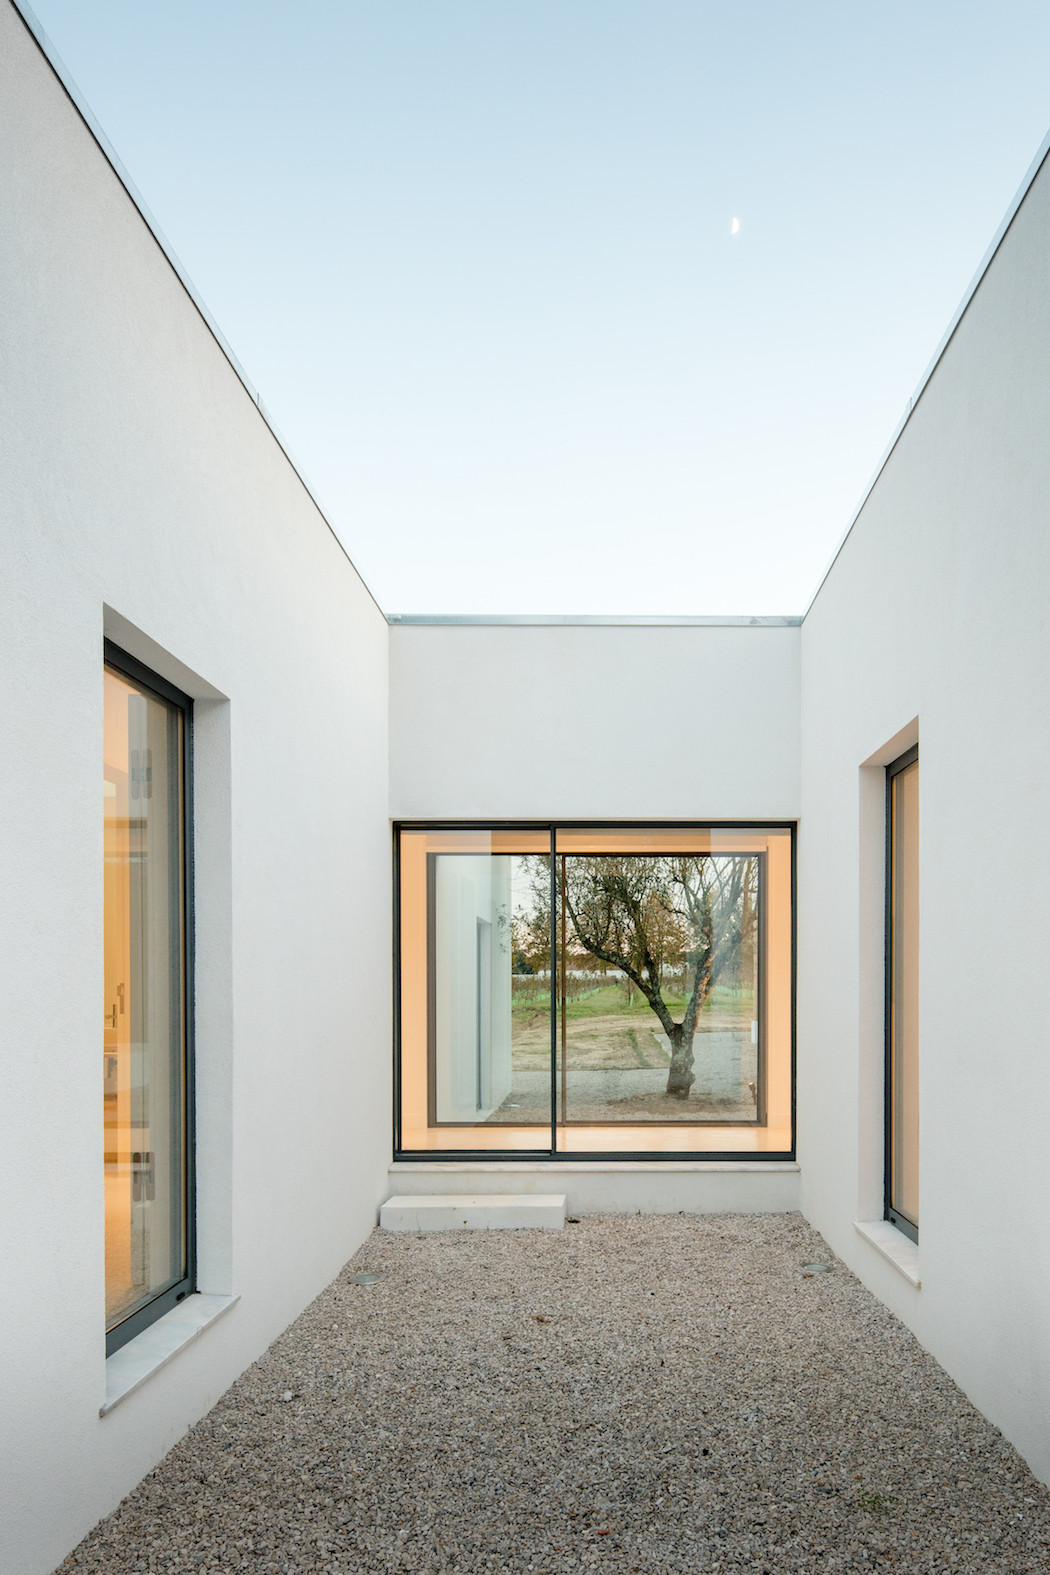 a Minimal House in Portugal Surrounded by Vines 14 : minimal-house-architecture - designwebi.com